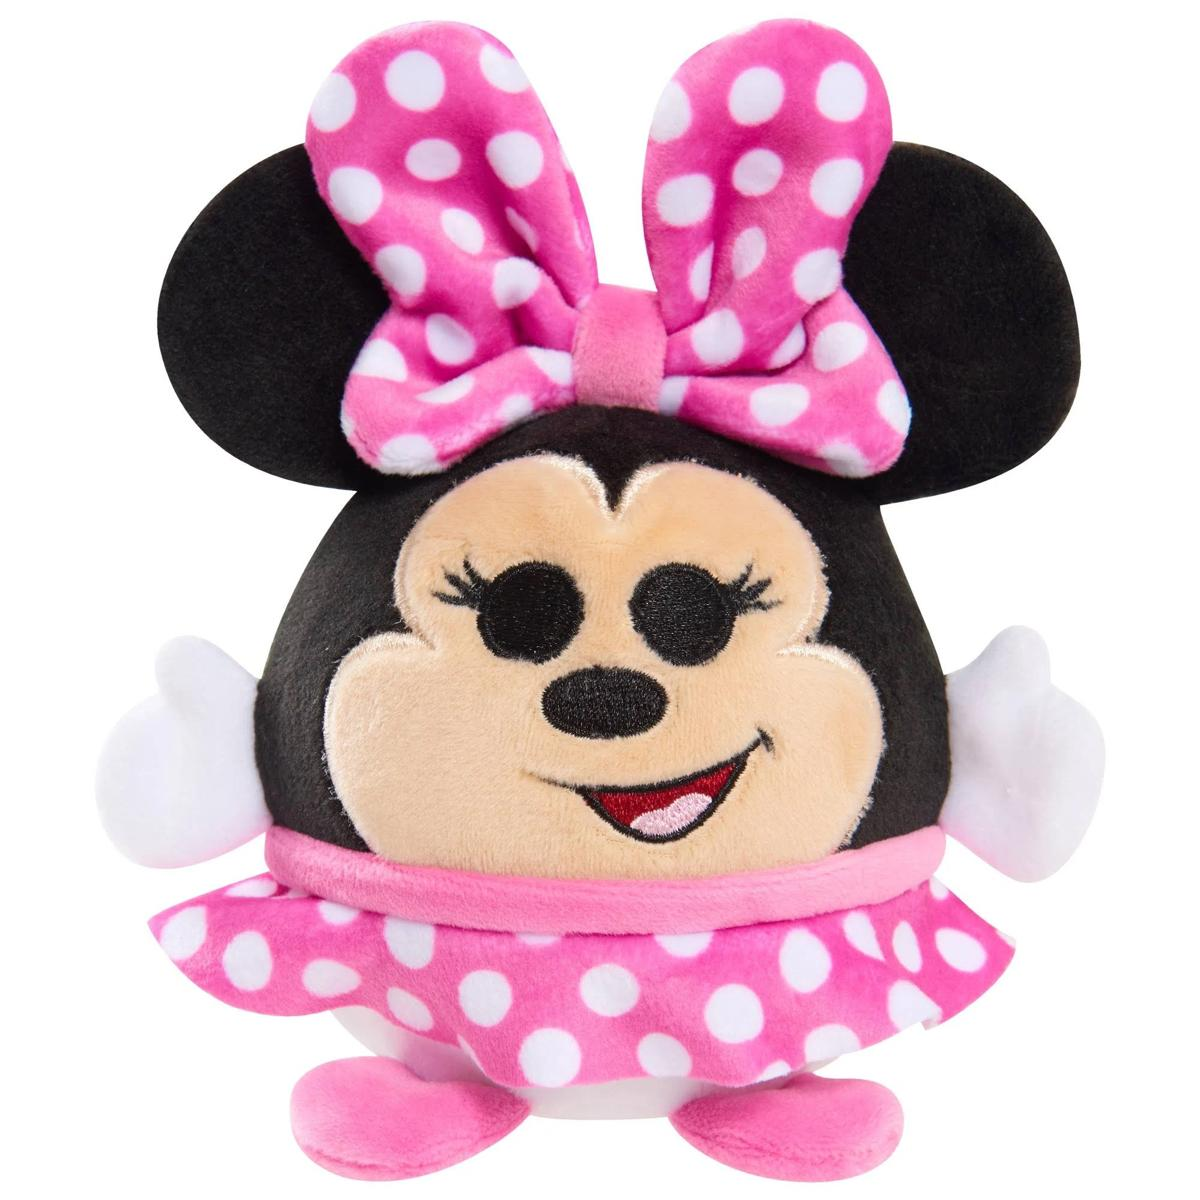 Minnie Slow Rising Plush Squeezable